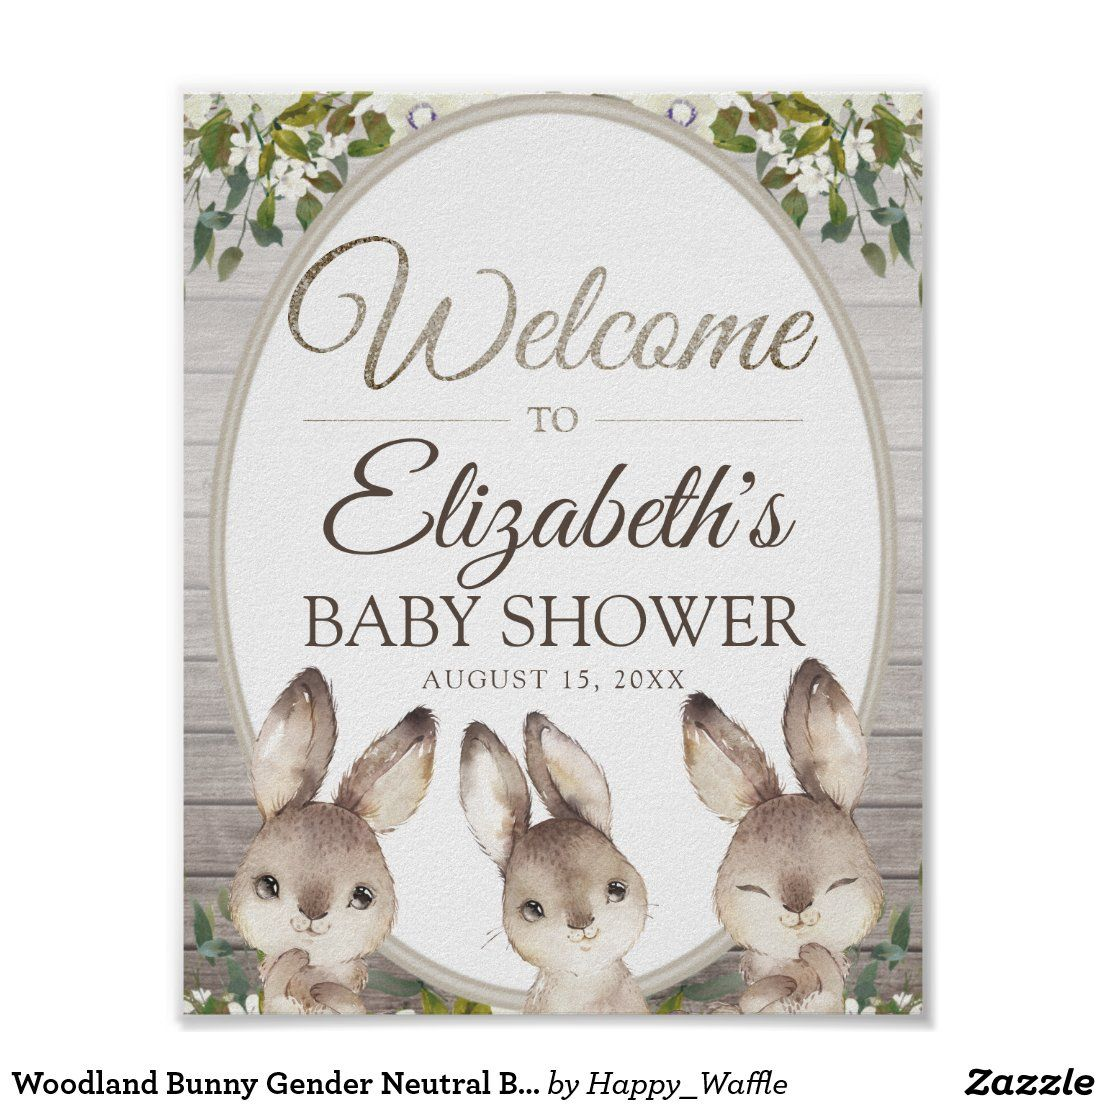 Woodland Bunny Gender Neutral Baby Shower Welcome Poster Zazzle Com In 2021 Bunny Baby Shower Theme Neutral Baby Shower Woodland Bunny